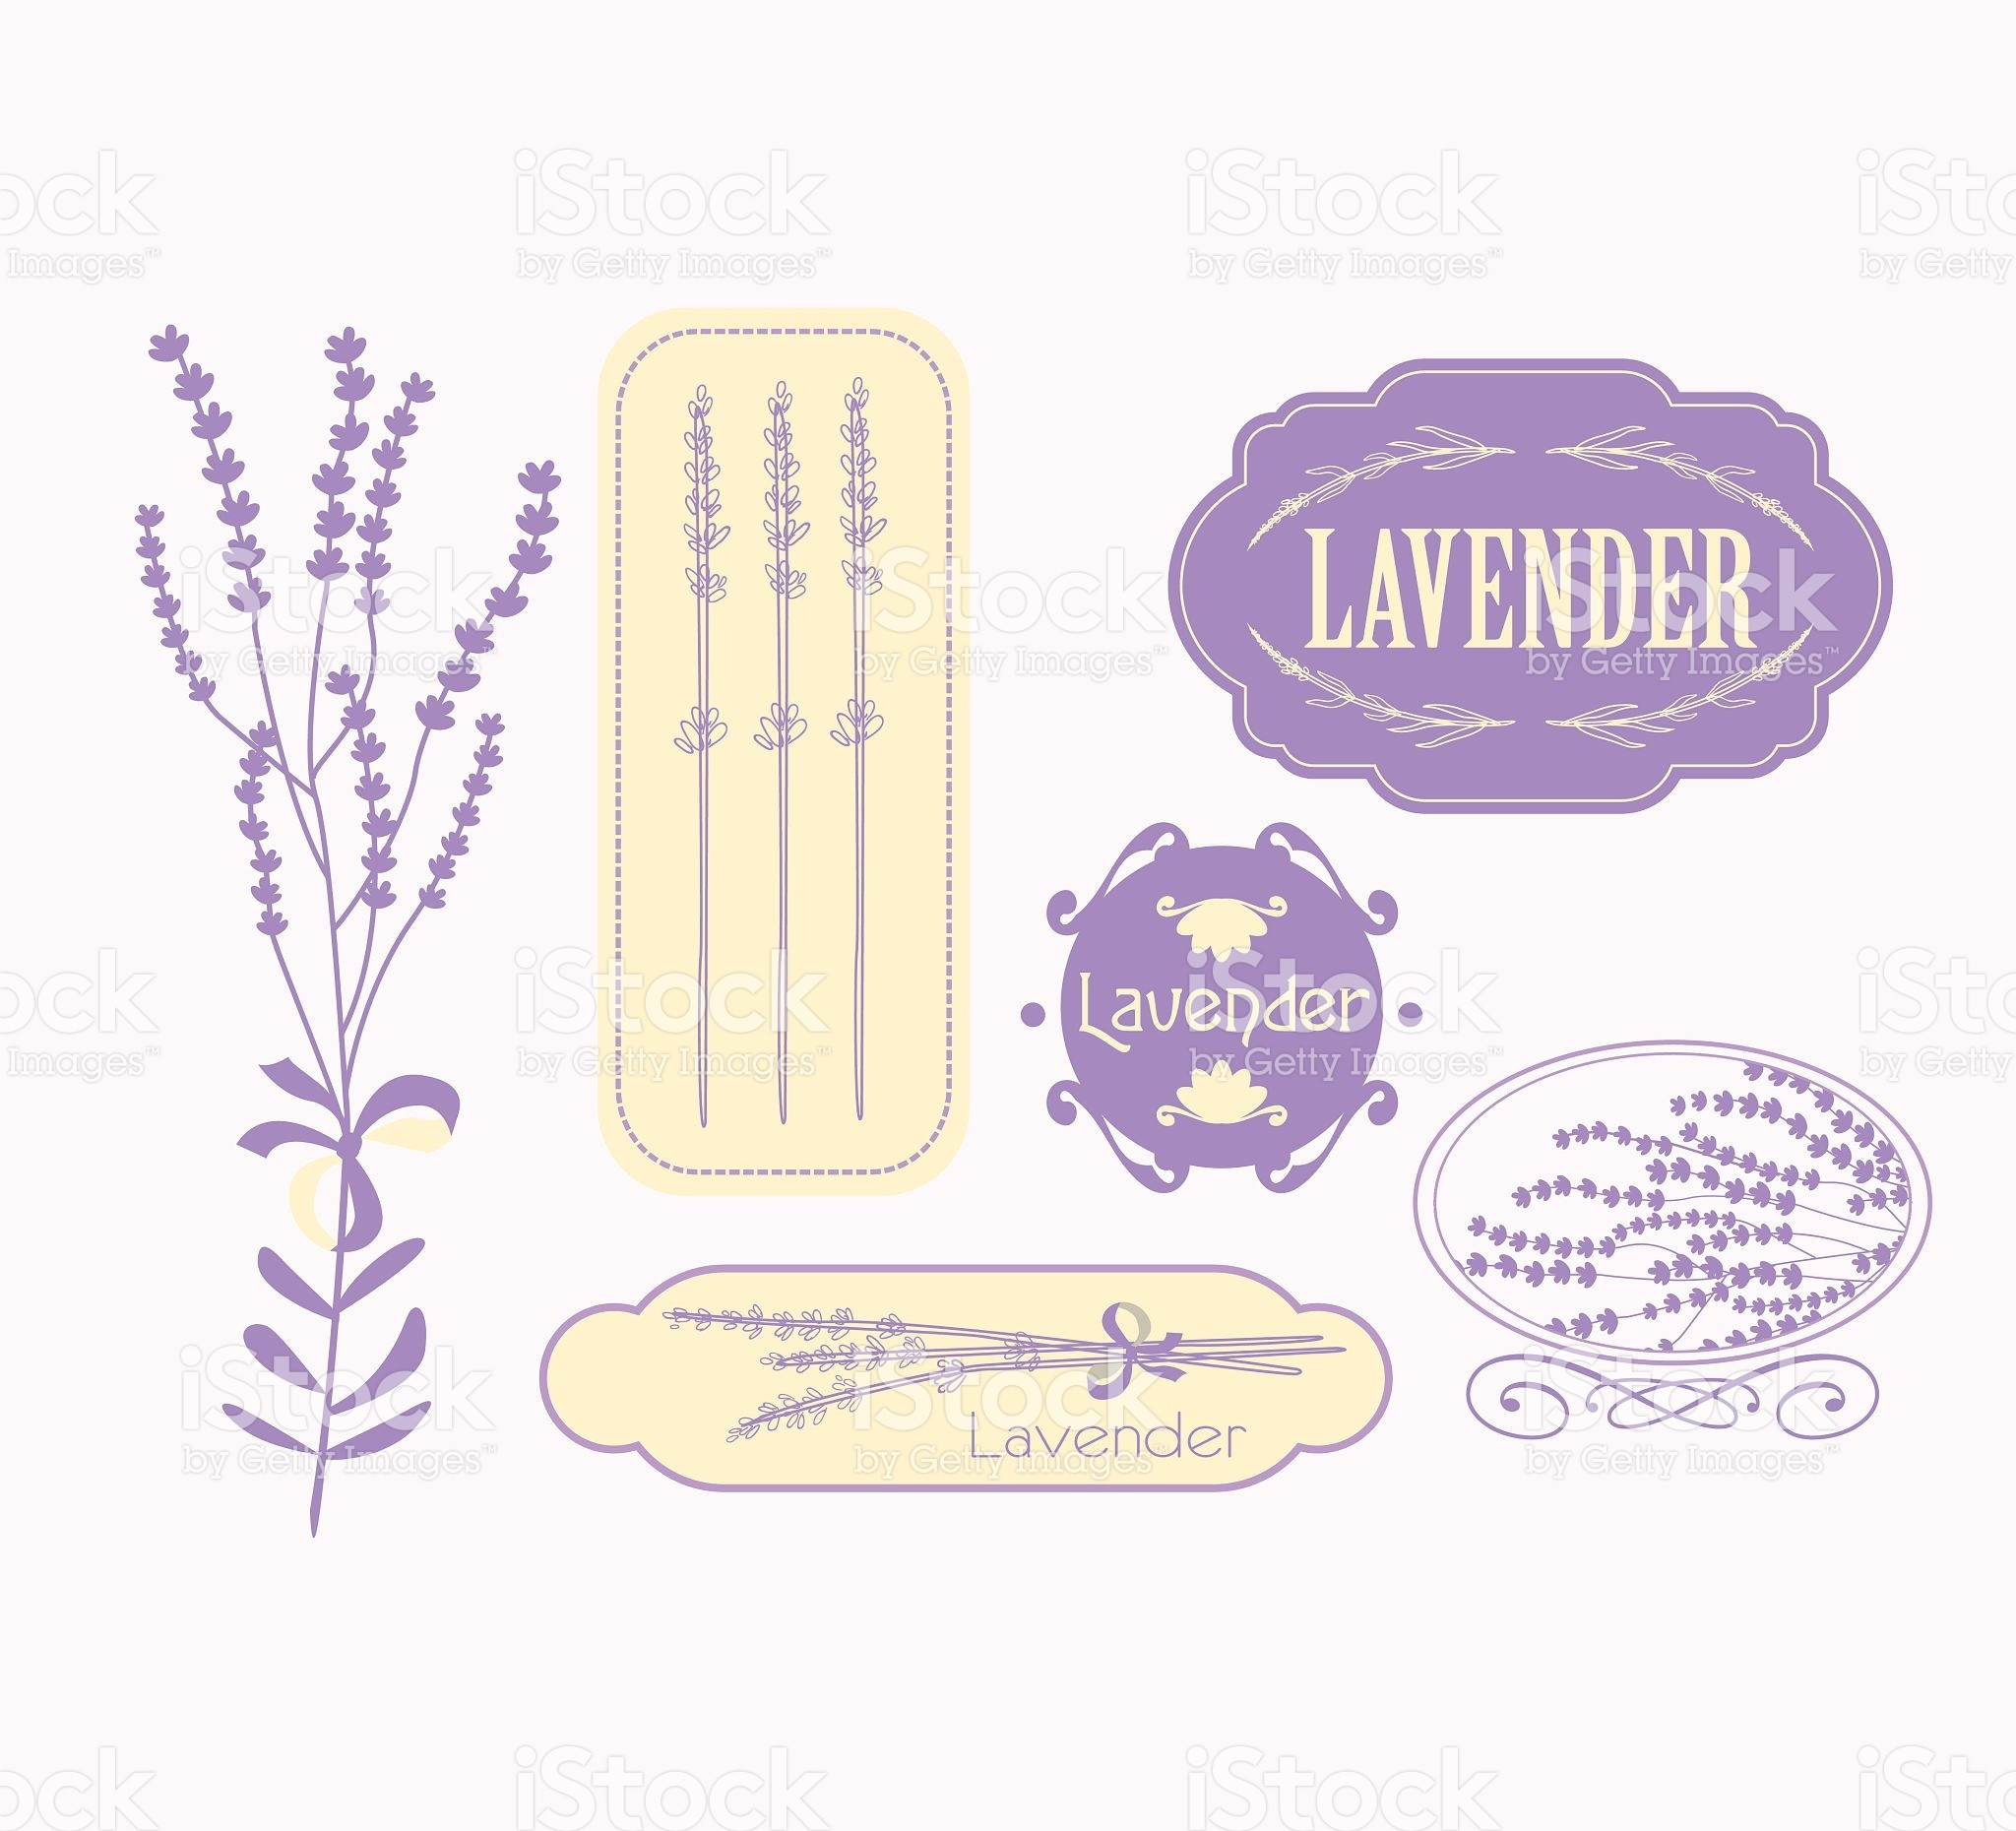 2048x1860 Vintage lavender background, aromatherapy and spa packaging design stock  vector art 60307982 - iStock